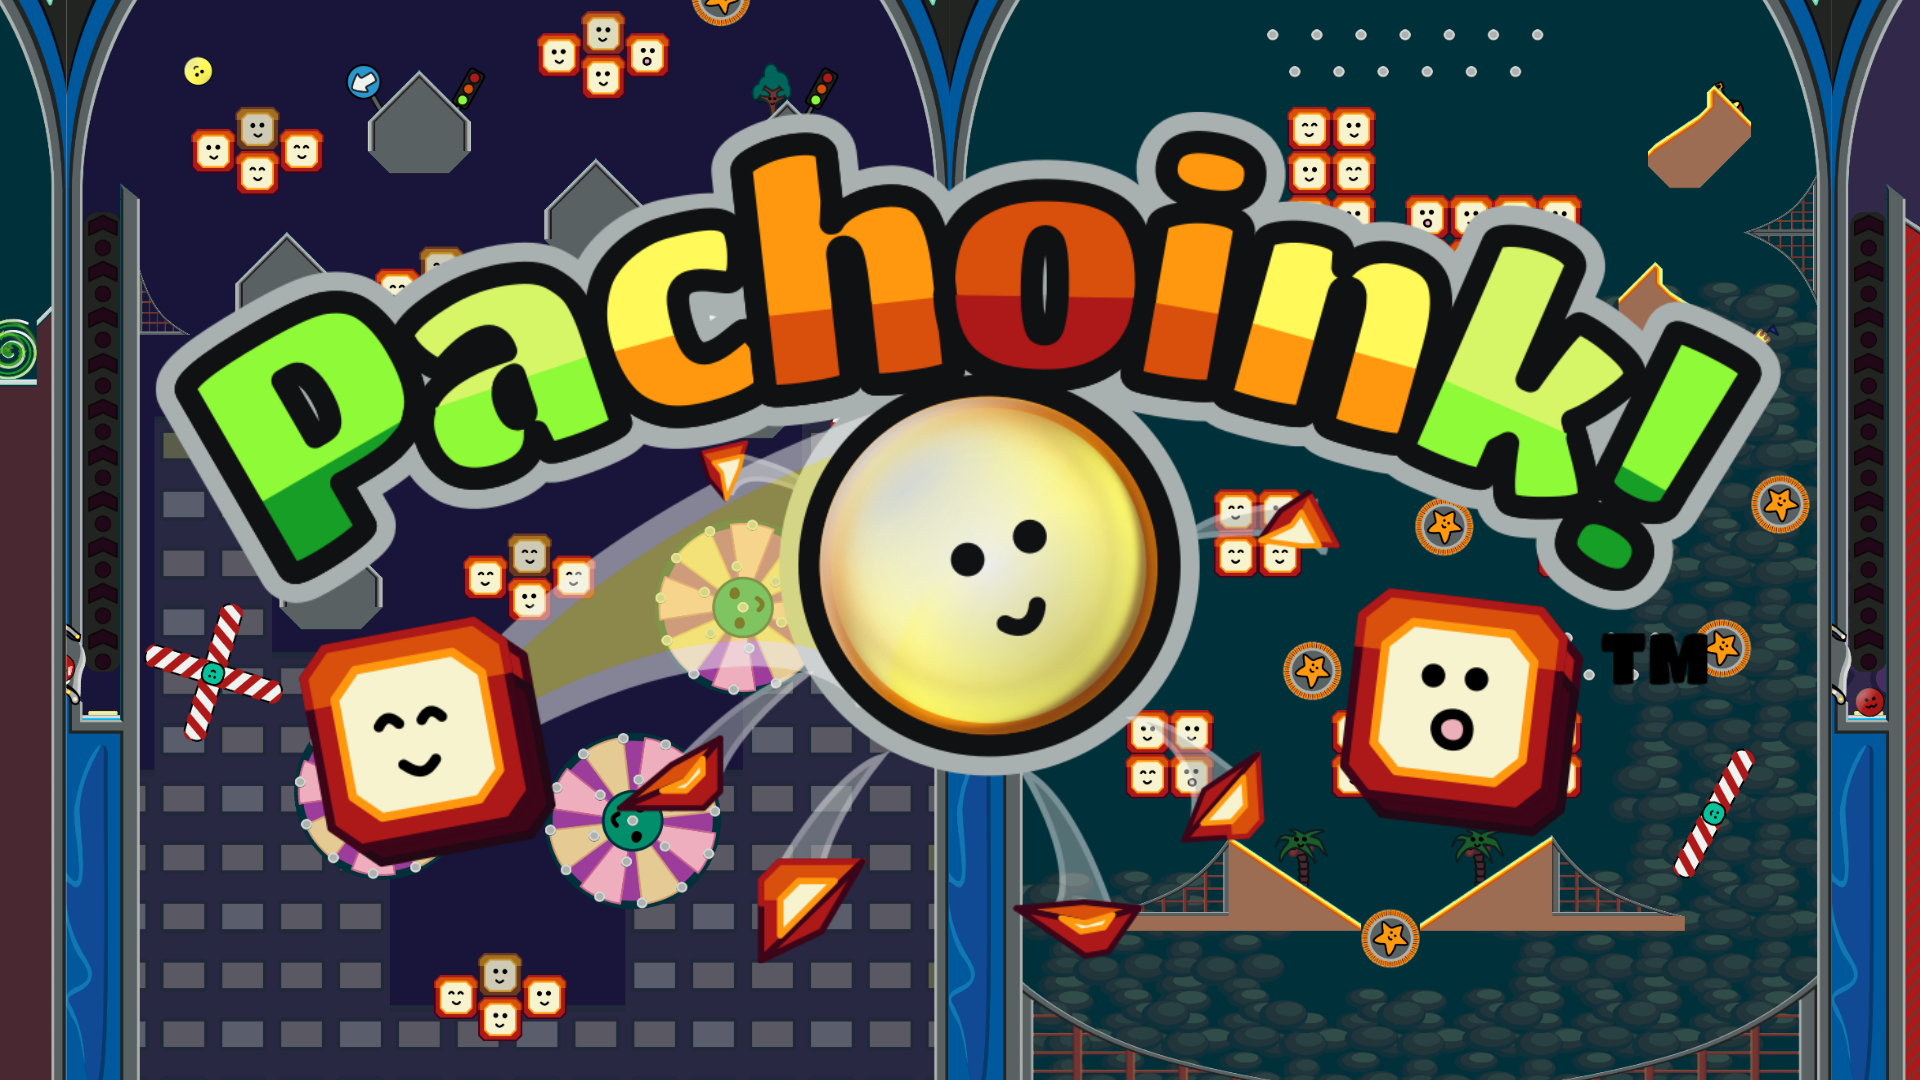 Pachoink! Alt logo with background